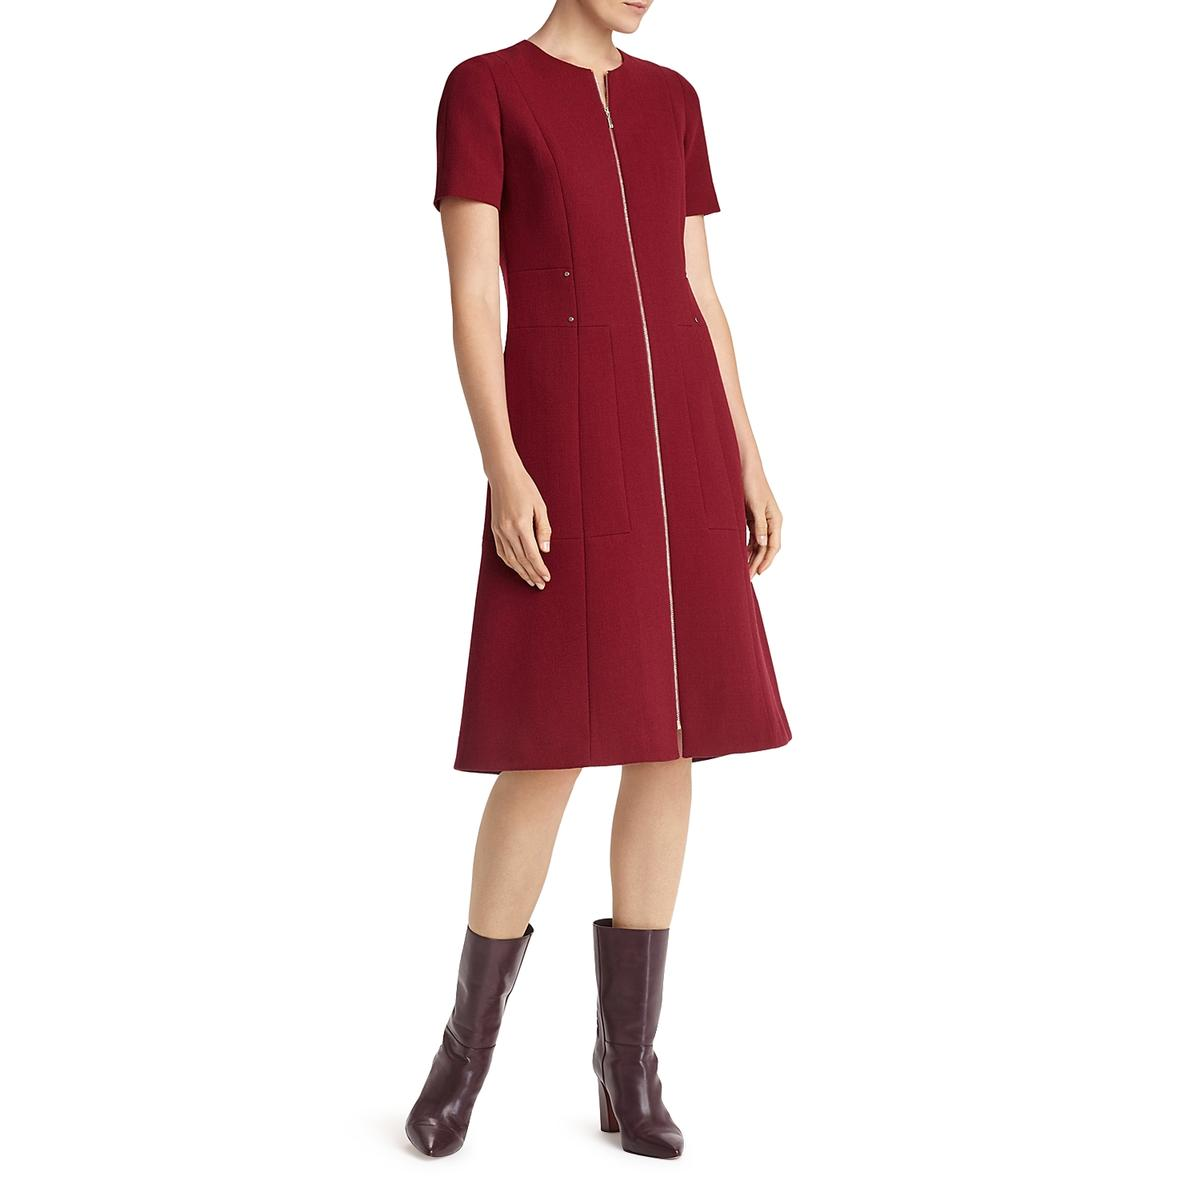 27b33dc1e83 Details about Lafayette 148 New York Womens Sonya Red Wool Wear to Work  Dress 0 BHFO 2453